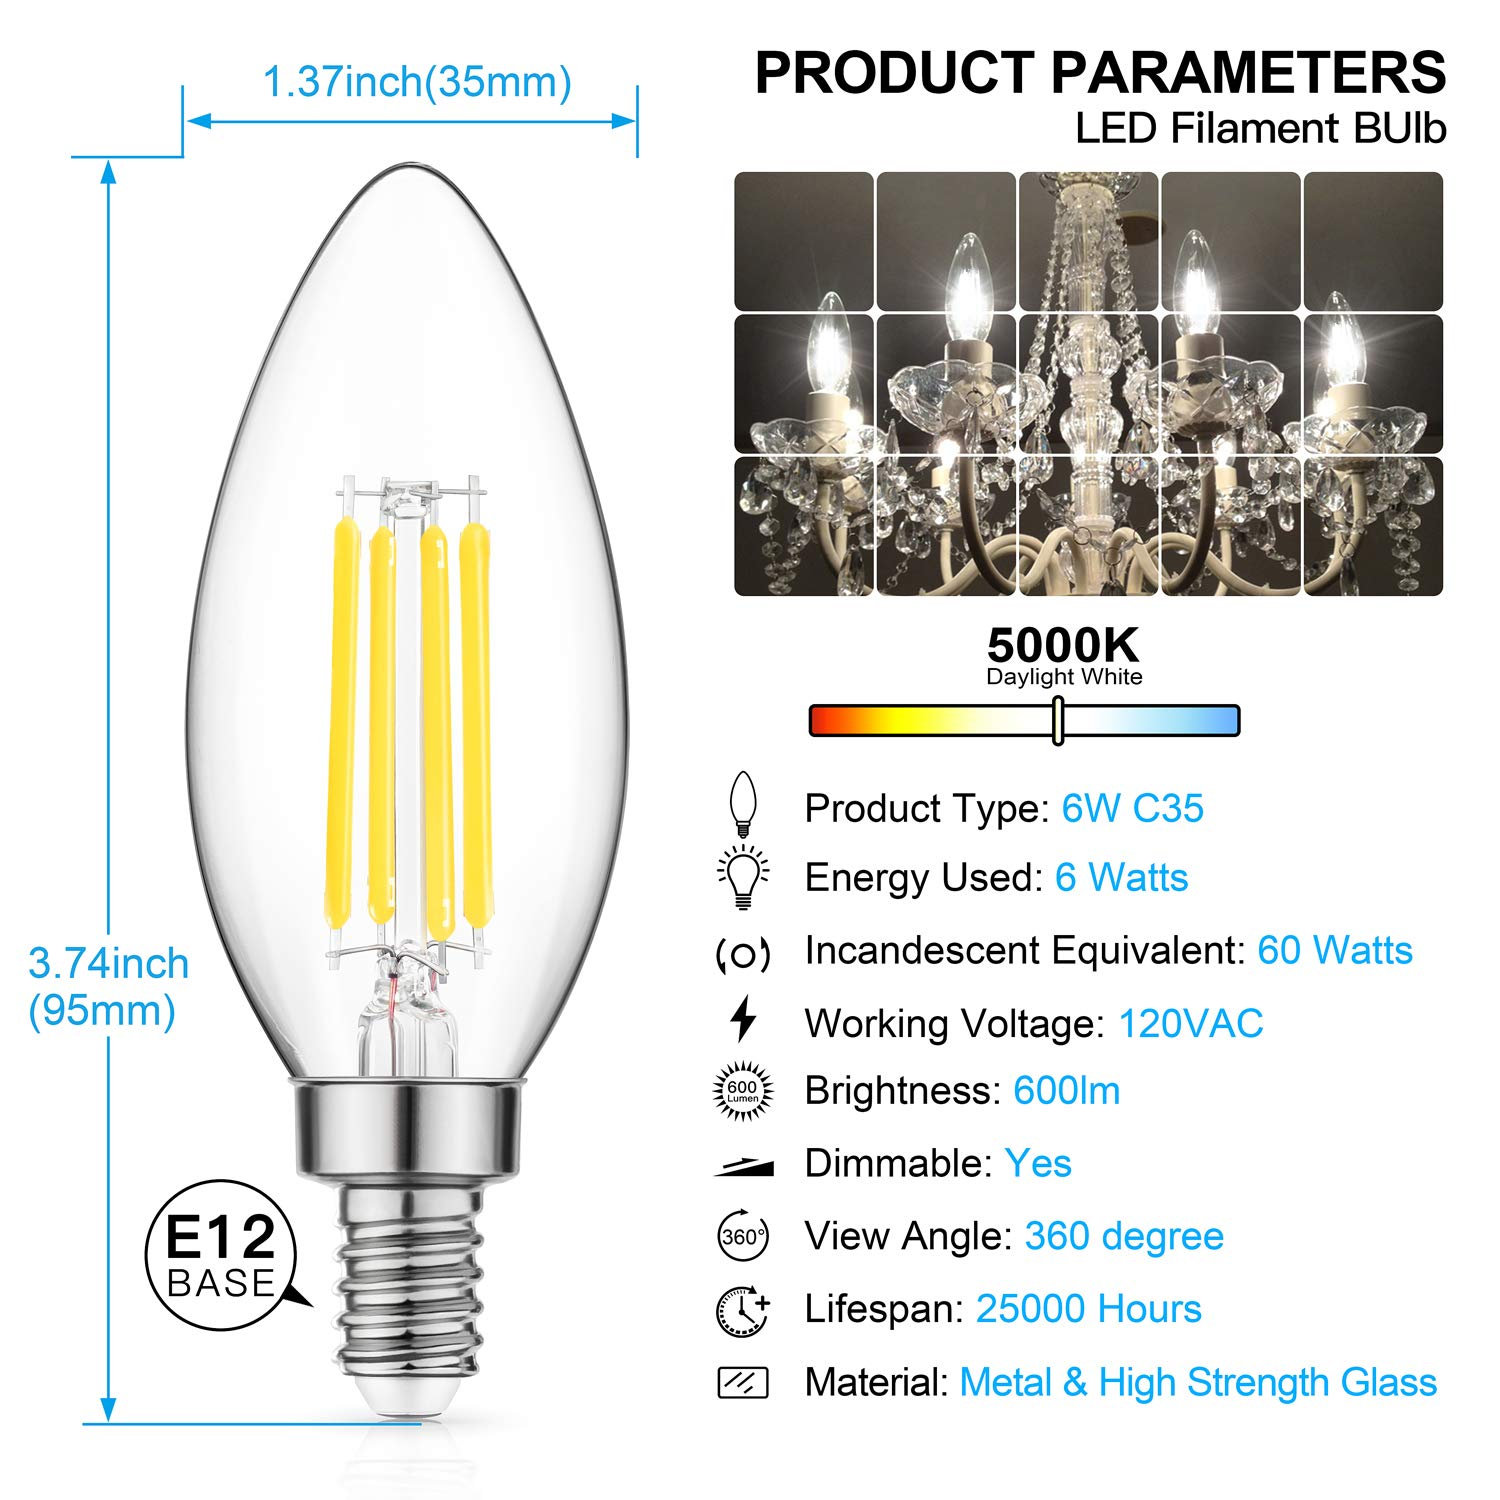 Dimmable LED Candelabra Bulb 60W Equivalent, 5000K Daylight White, 6W Chandelier LED Filament Light Bulbs 600Lumens, E12 Base, B11 Decorative Candle Bulb Pack of 12 by MAXvolador (Image #4)